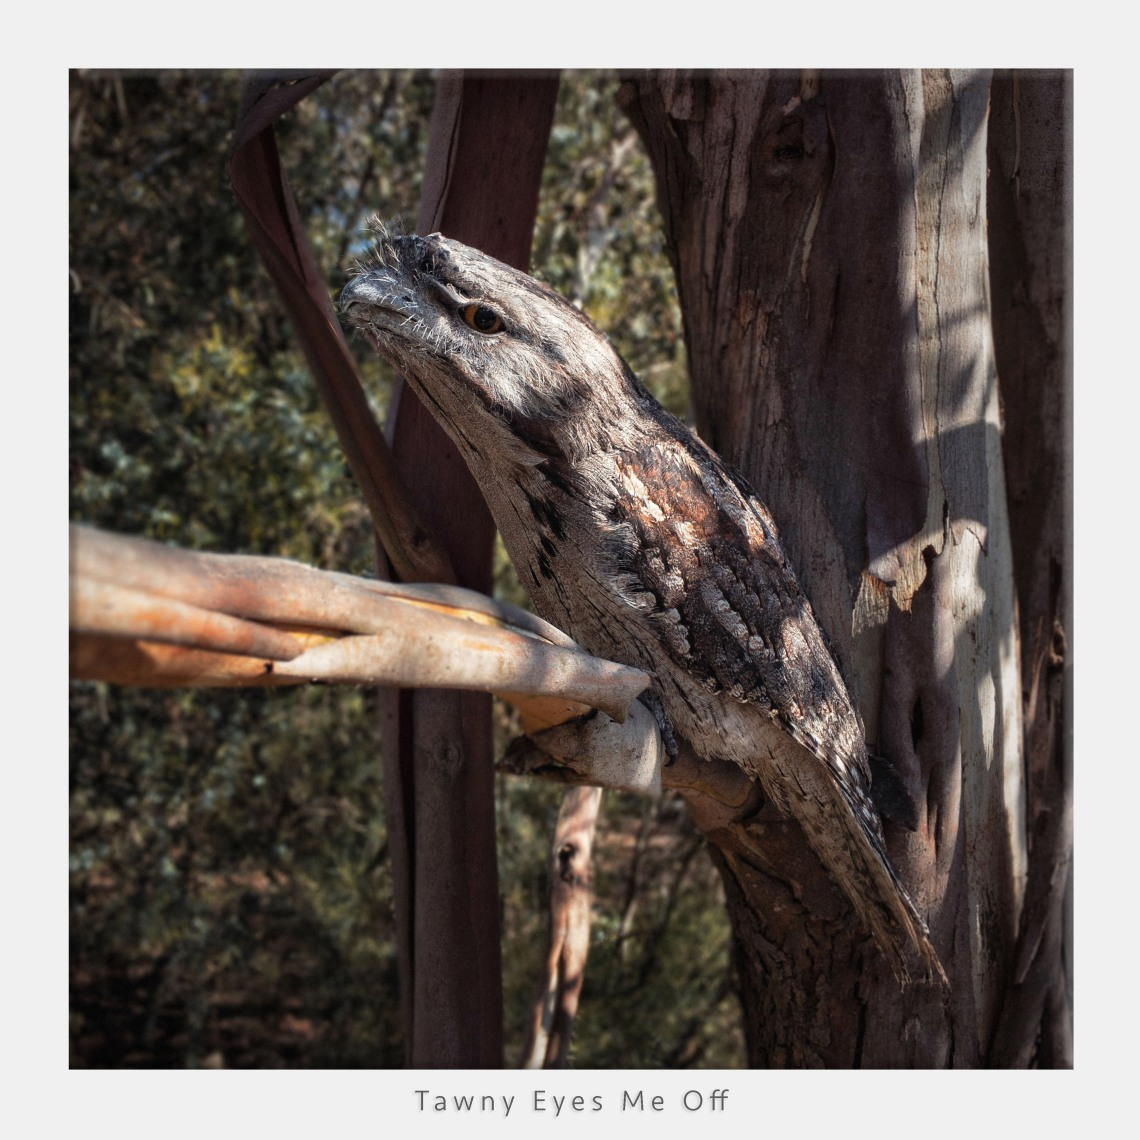 Tawny Frogmouth in gumtree taken with iPhone and depth of field simulated in post